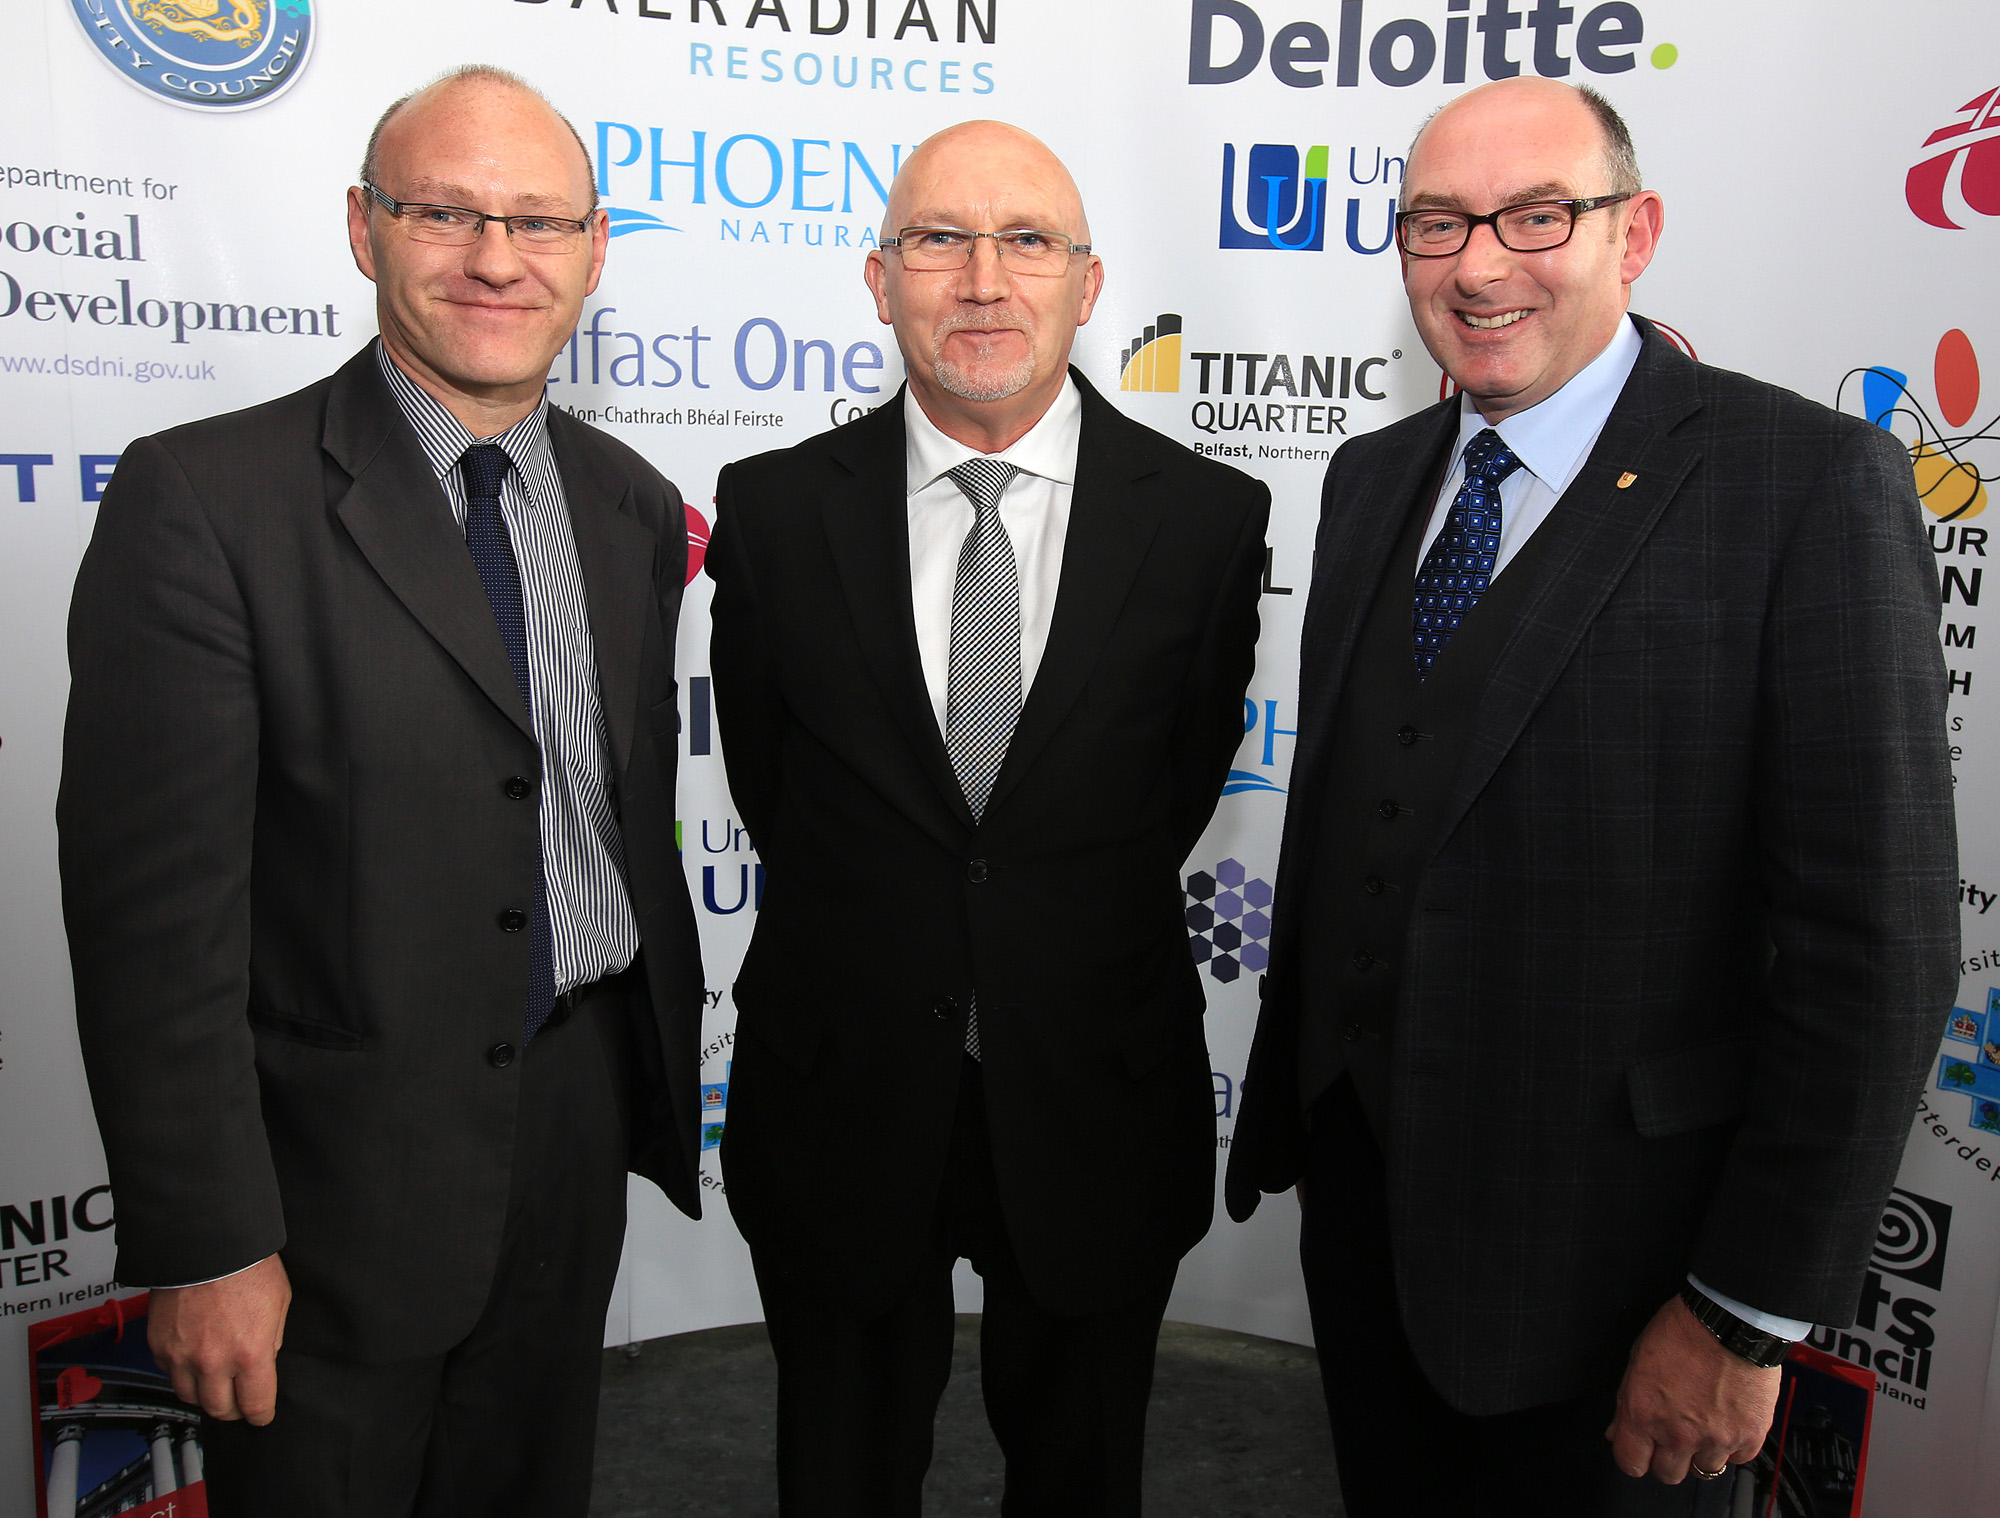 Belfast MET E3, One City Conference 'Lifting the City' . pictured: Paul Maskey MP, Bill Shaw (174 Trust) and John D'Arcy (Open University) 95JC13